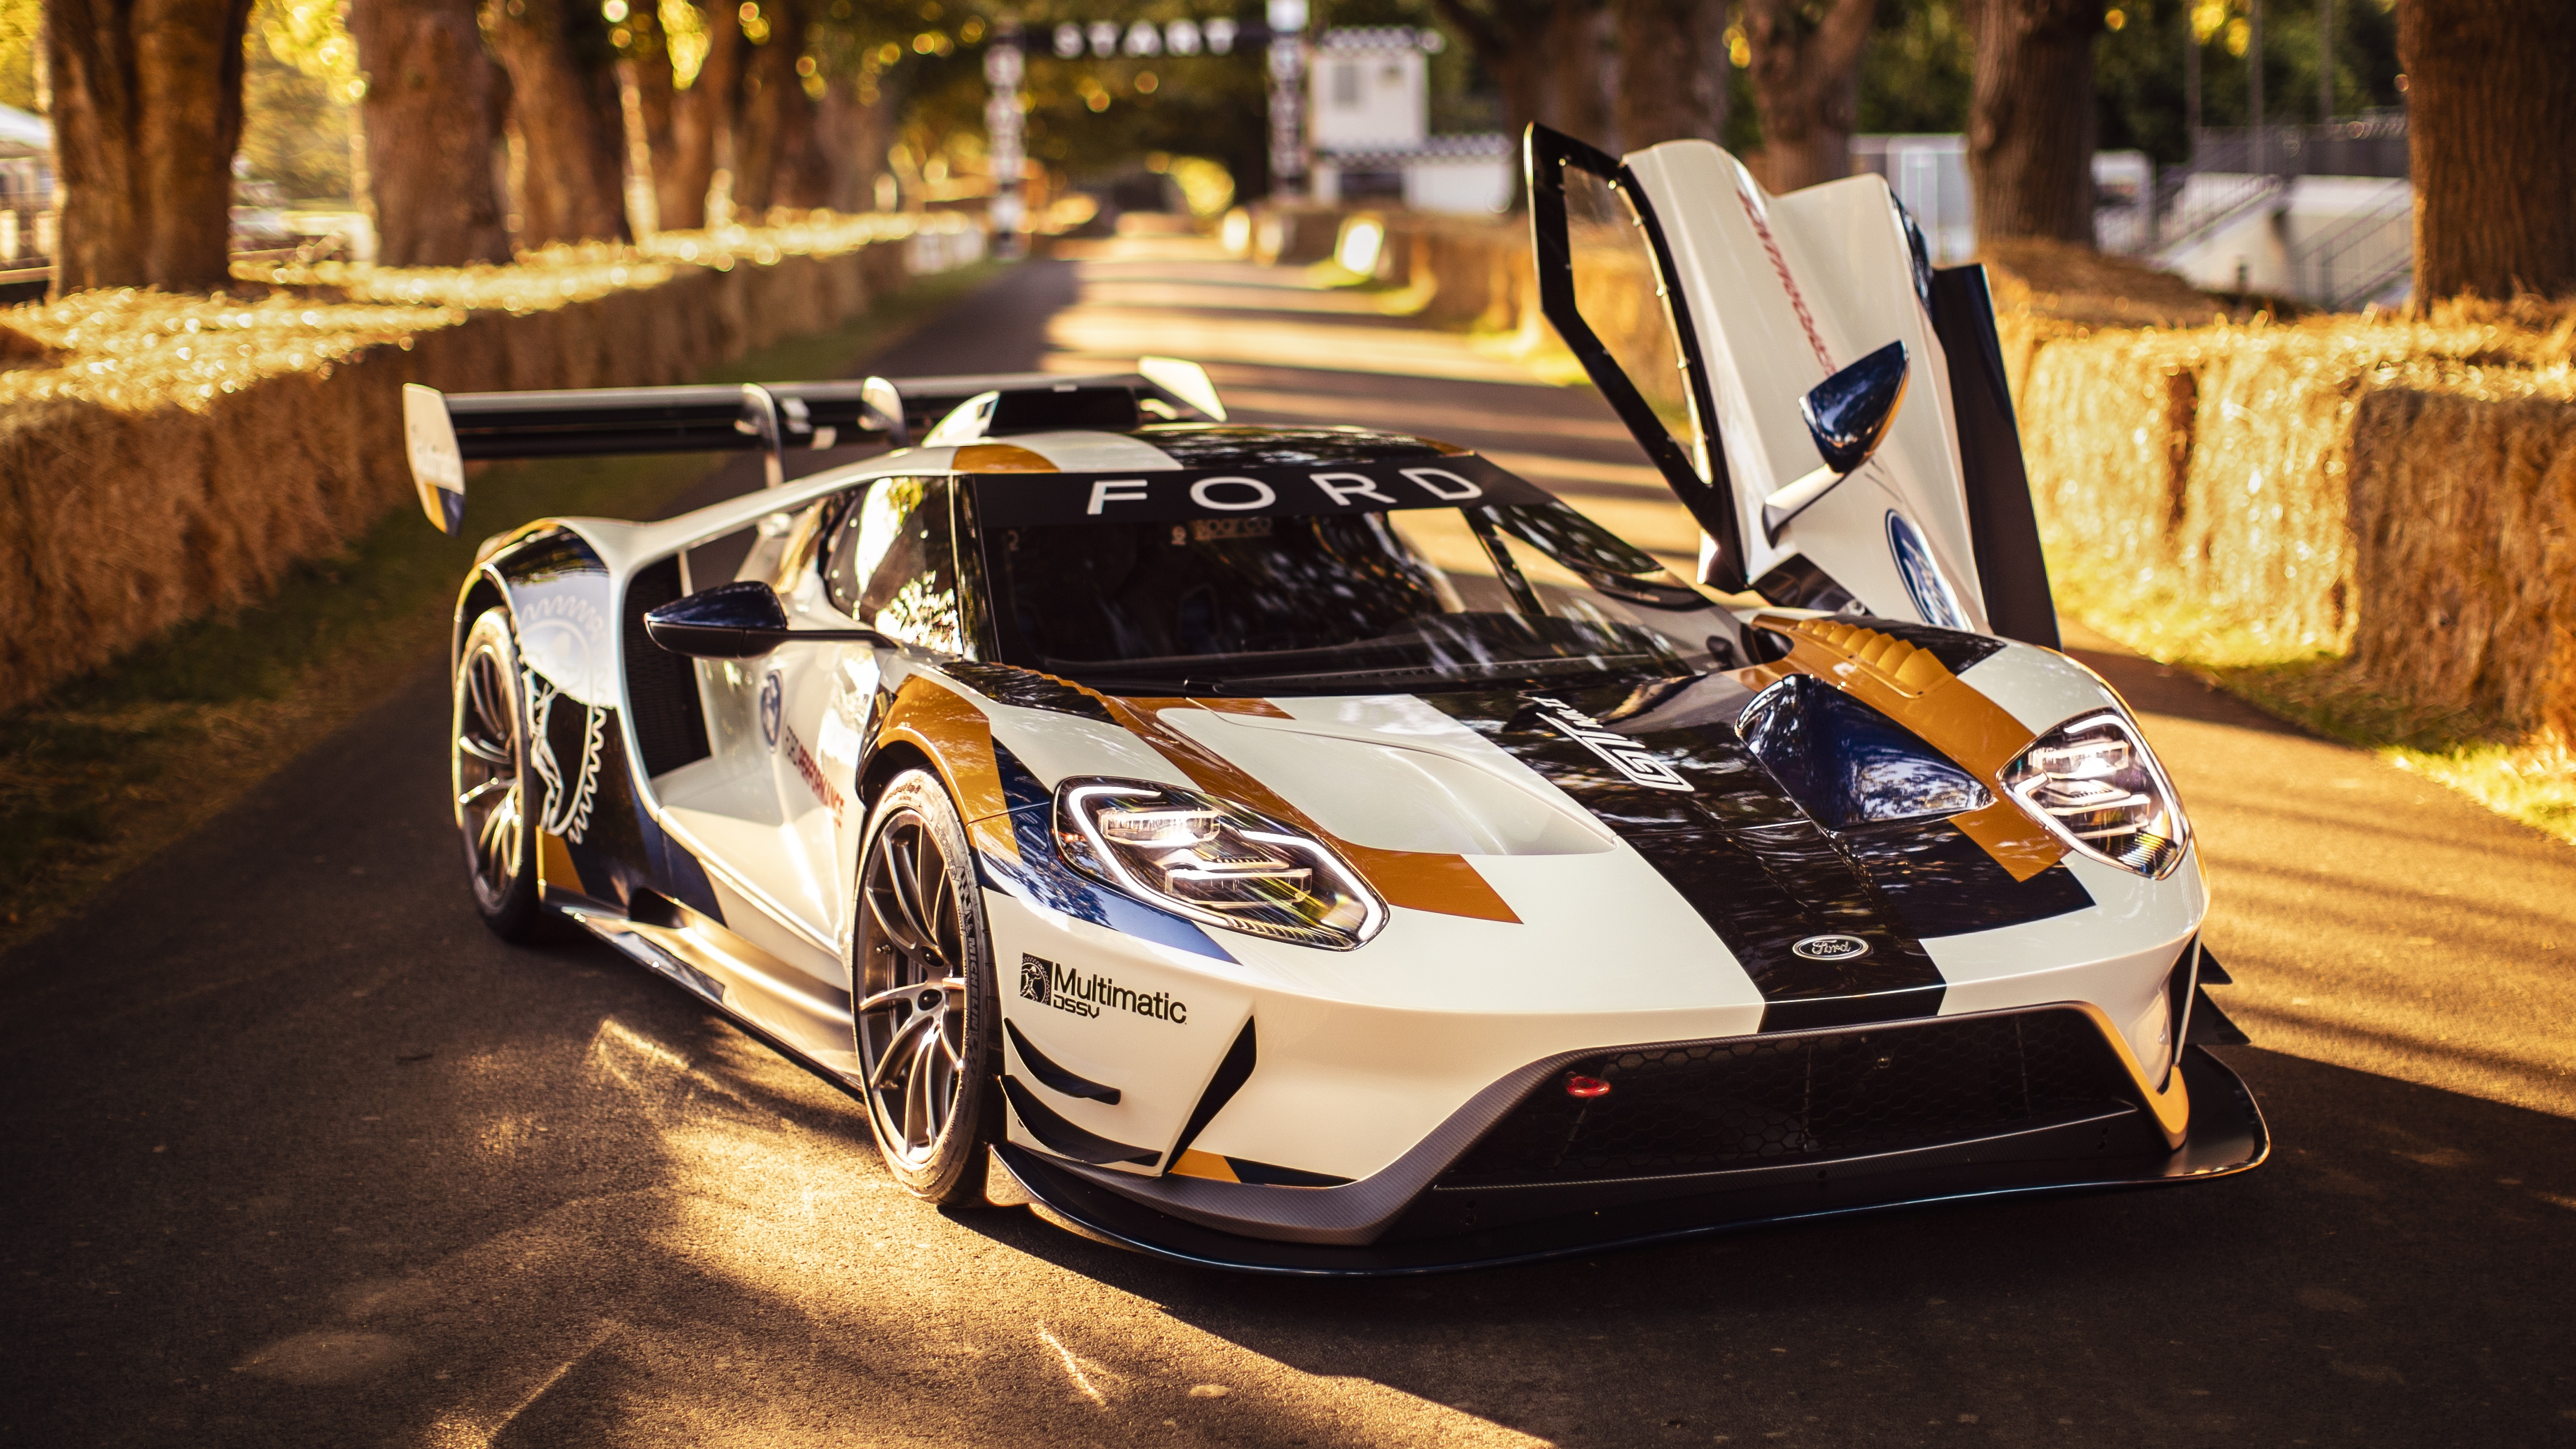 Wallpaper Of The Day: 2020 Ford GT MKII | Top Speed